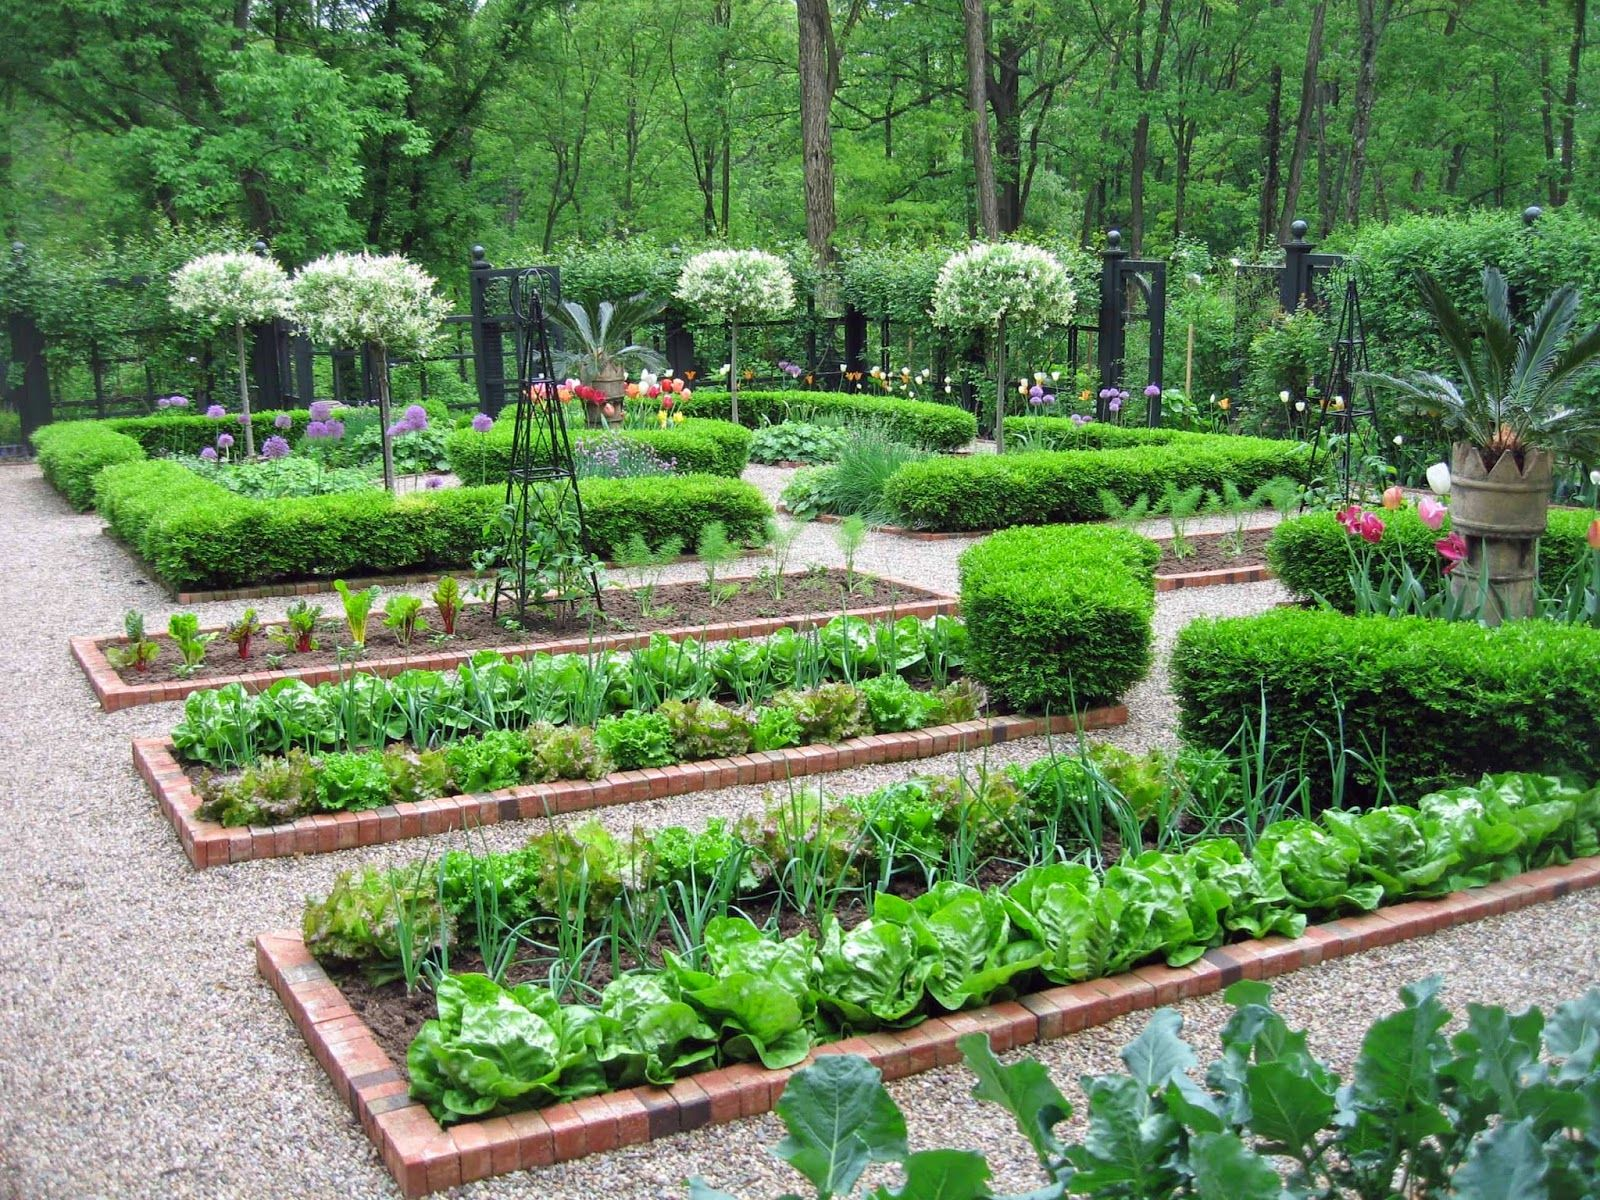 A potager is the French term for an ornamental vegetable or ...